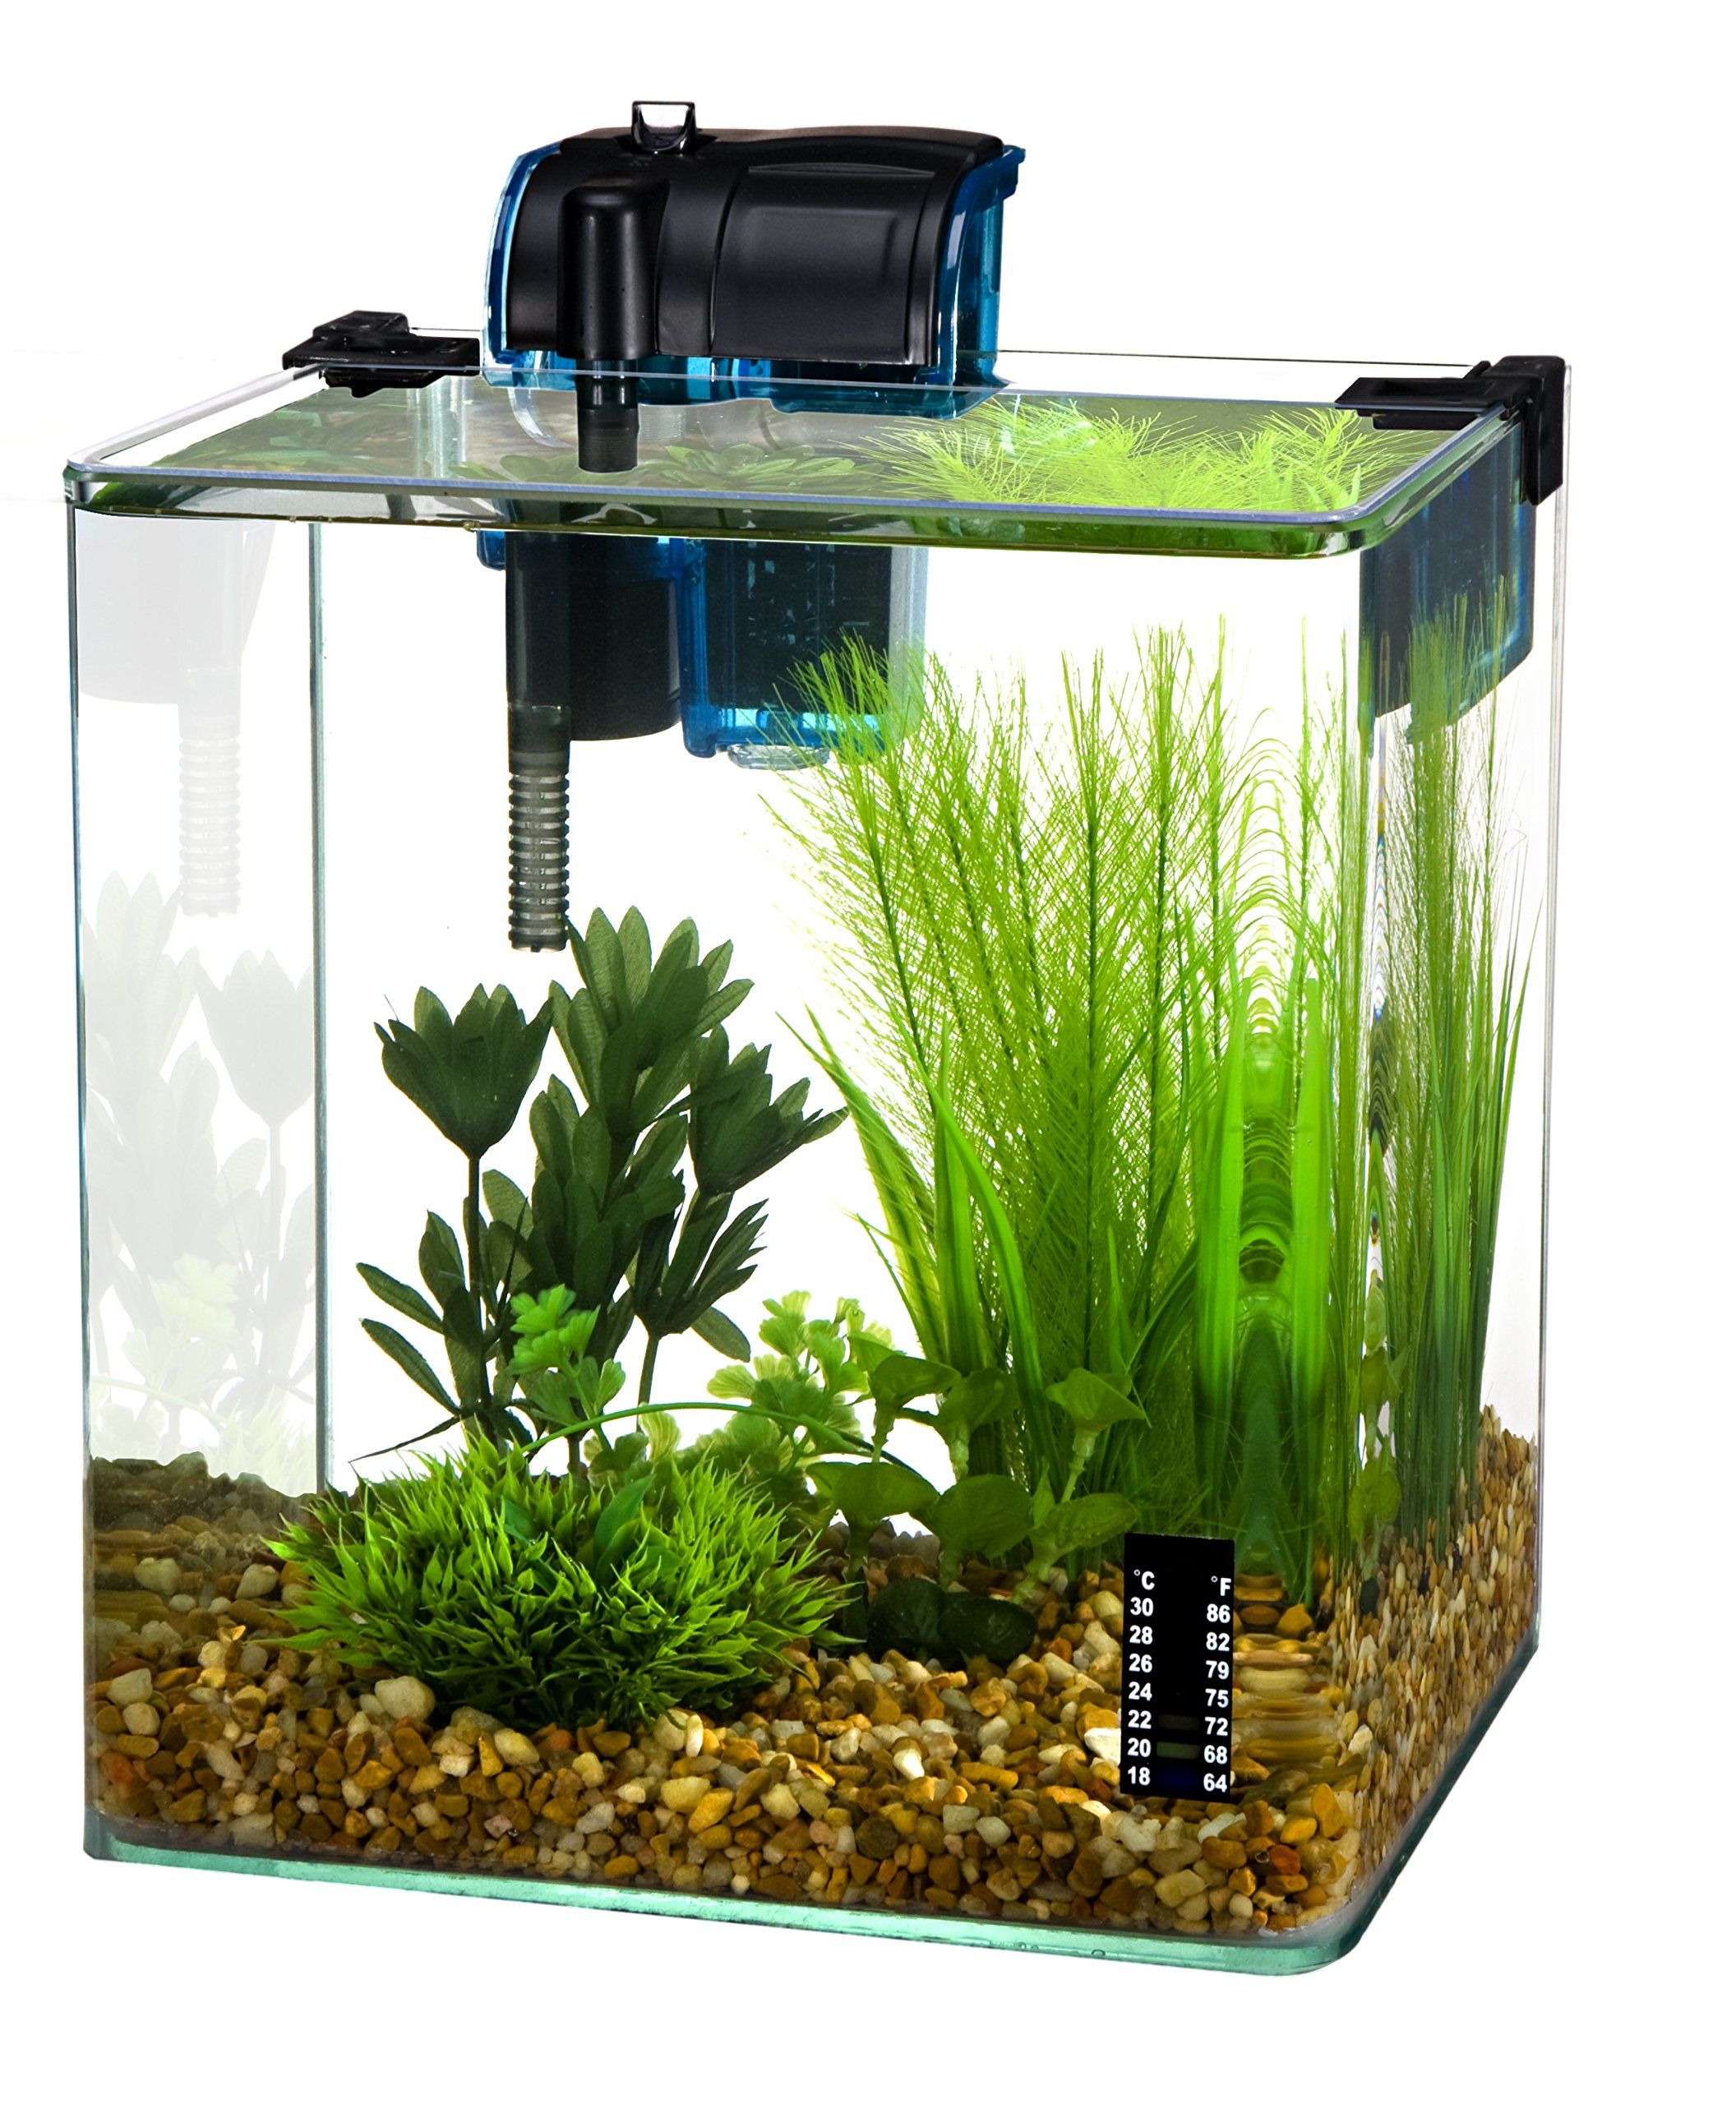 Penn Plax Vertex Aquarium Kit for Fish and Shrimp with Filter, Thermometer, Desktop Size 2.7 Gallon by Penn Plax